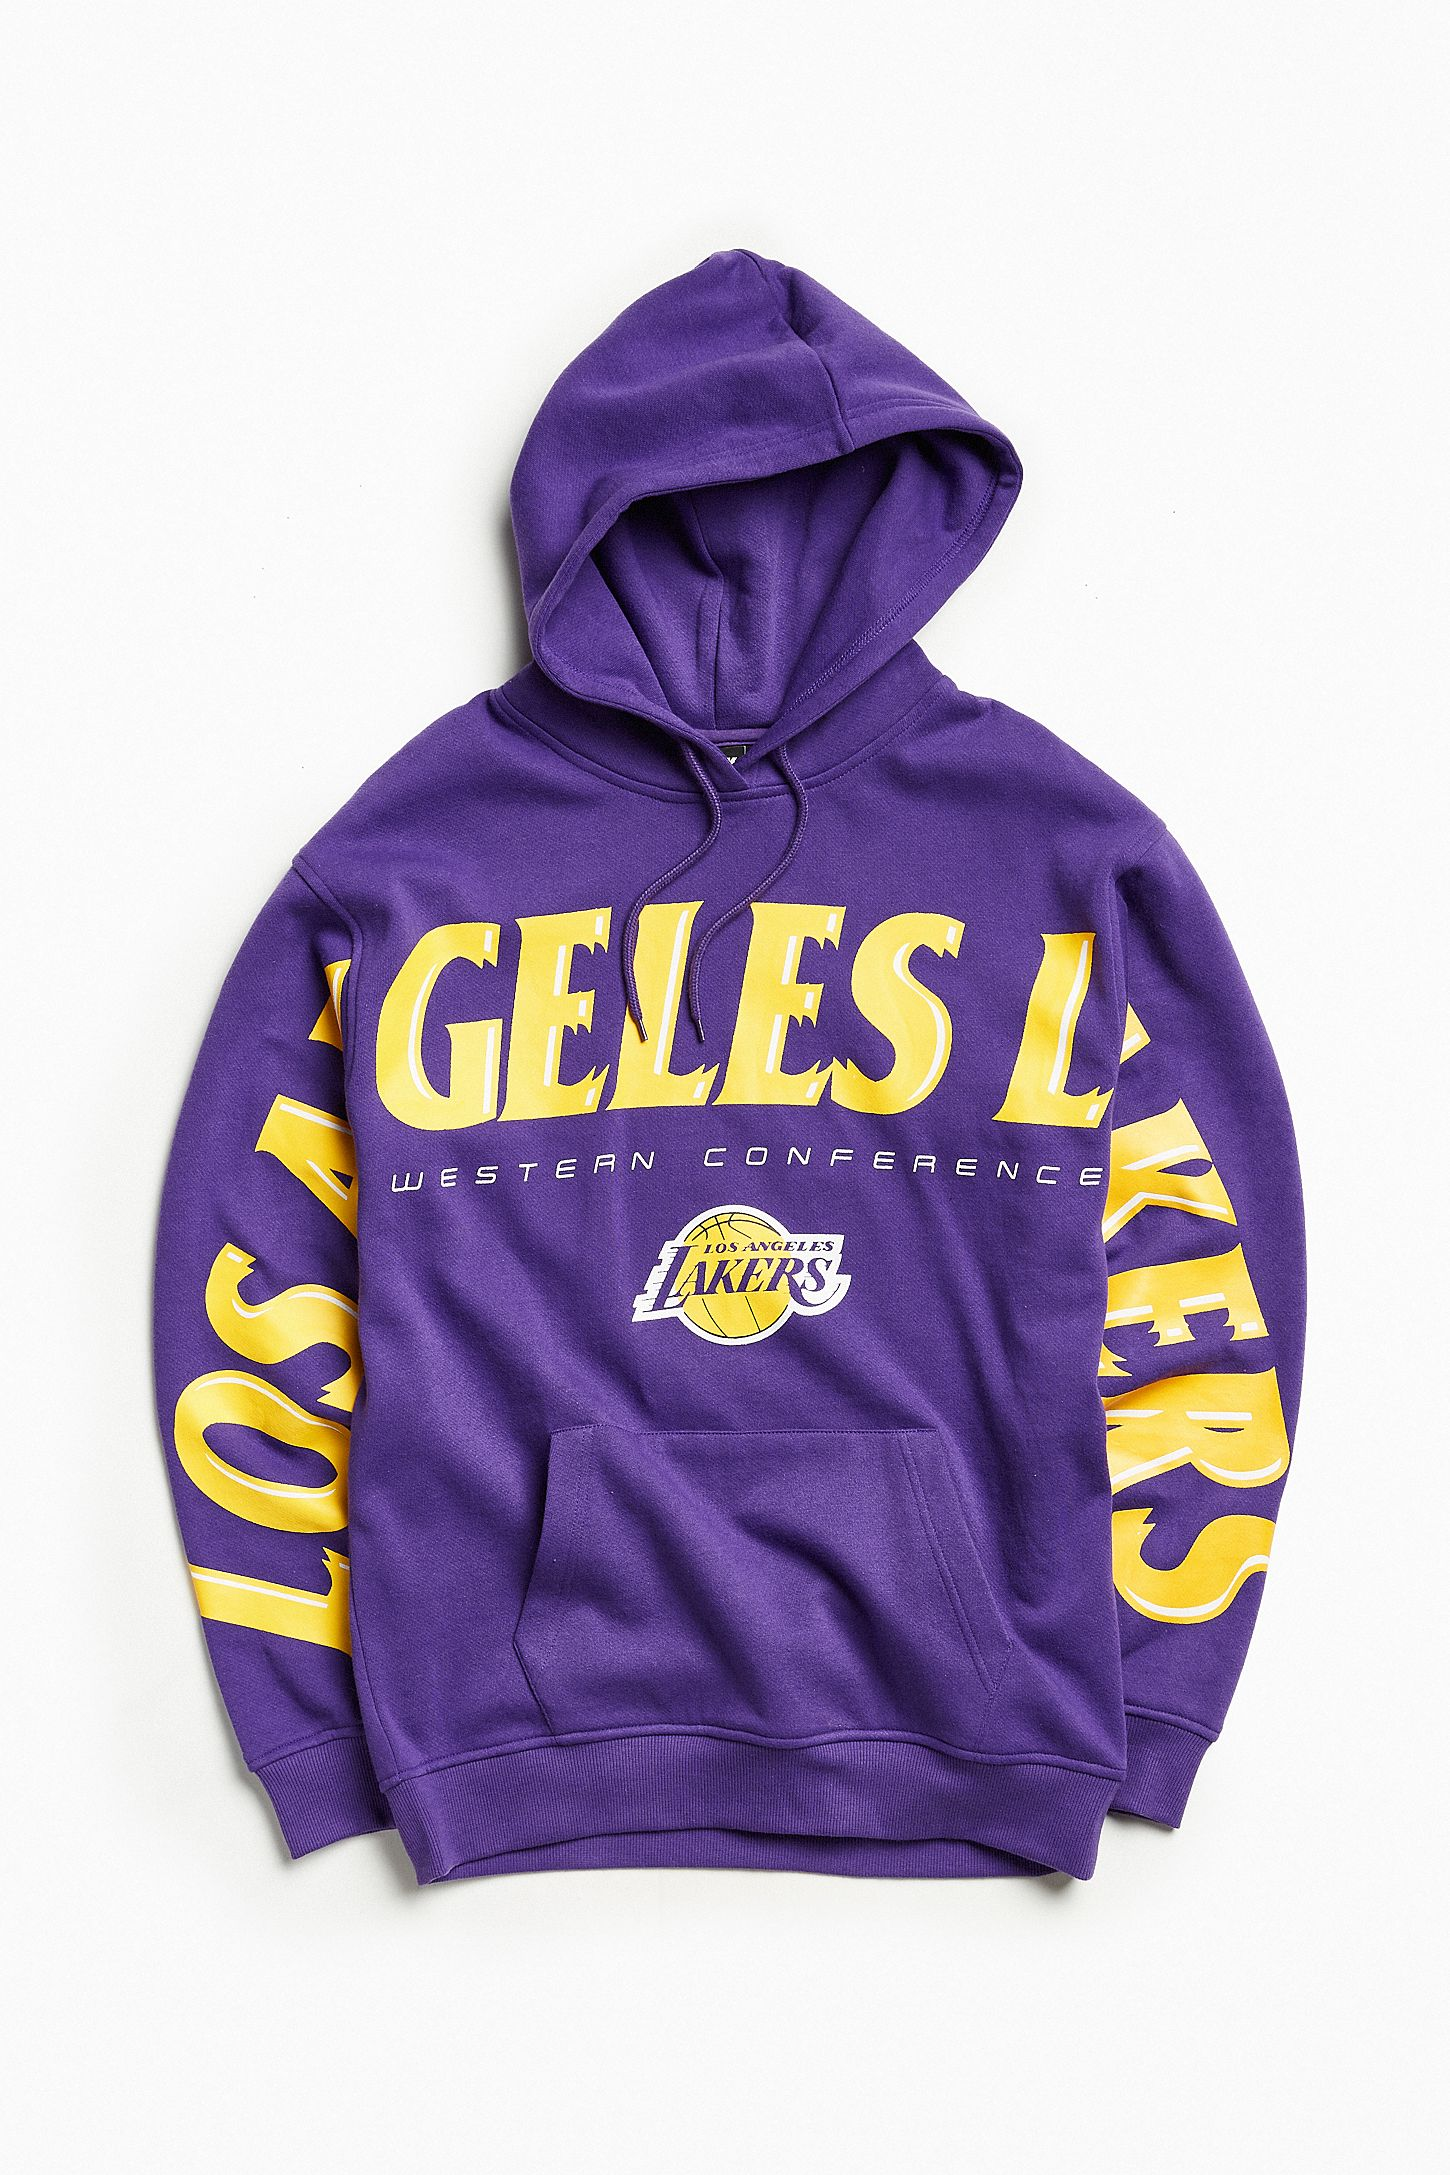 NBA Los Angeles Lakers Wingspan Hoodie Sweatshirt  38f35128642d